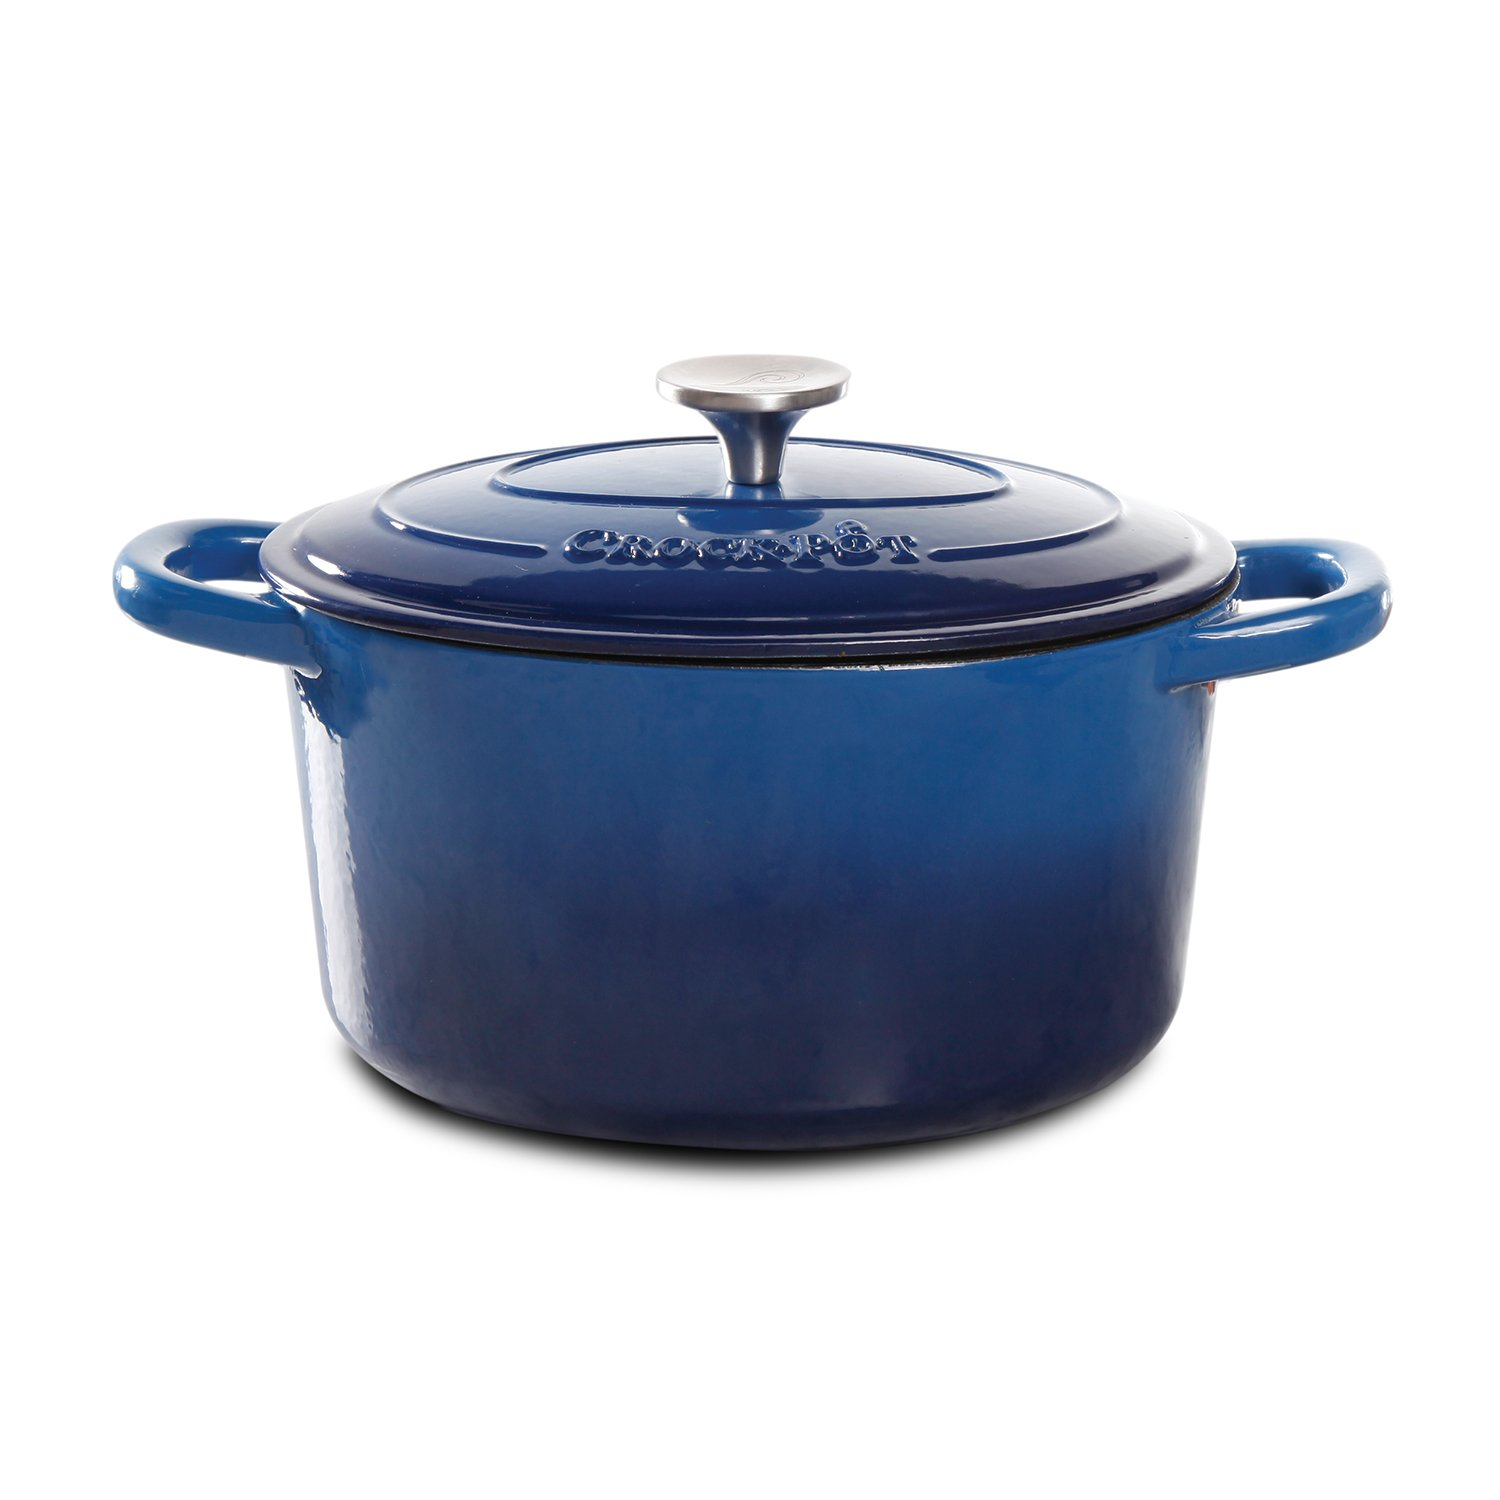 Crock Pot 69142.02 Artisan 5 Quart Enameled Cast Iron Round Dutch Oven, Blue